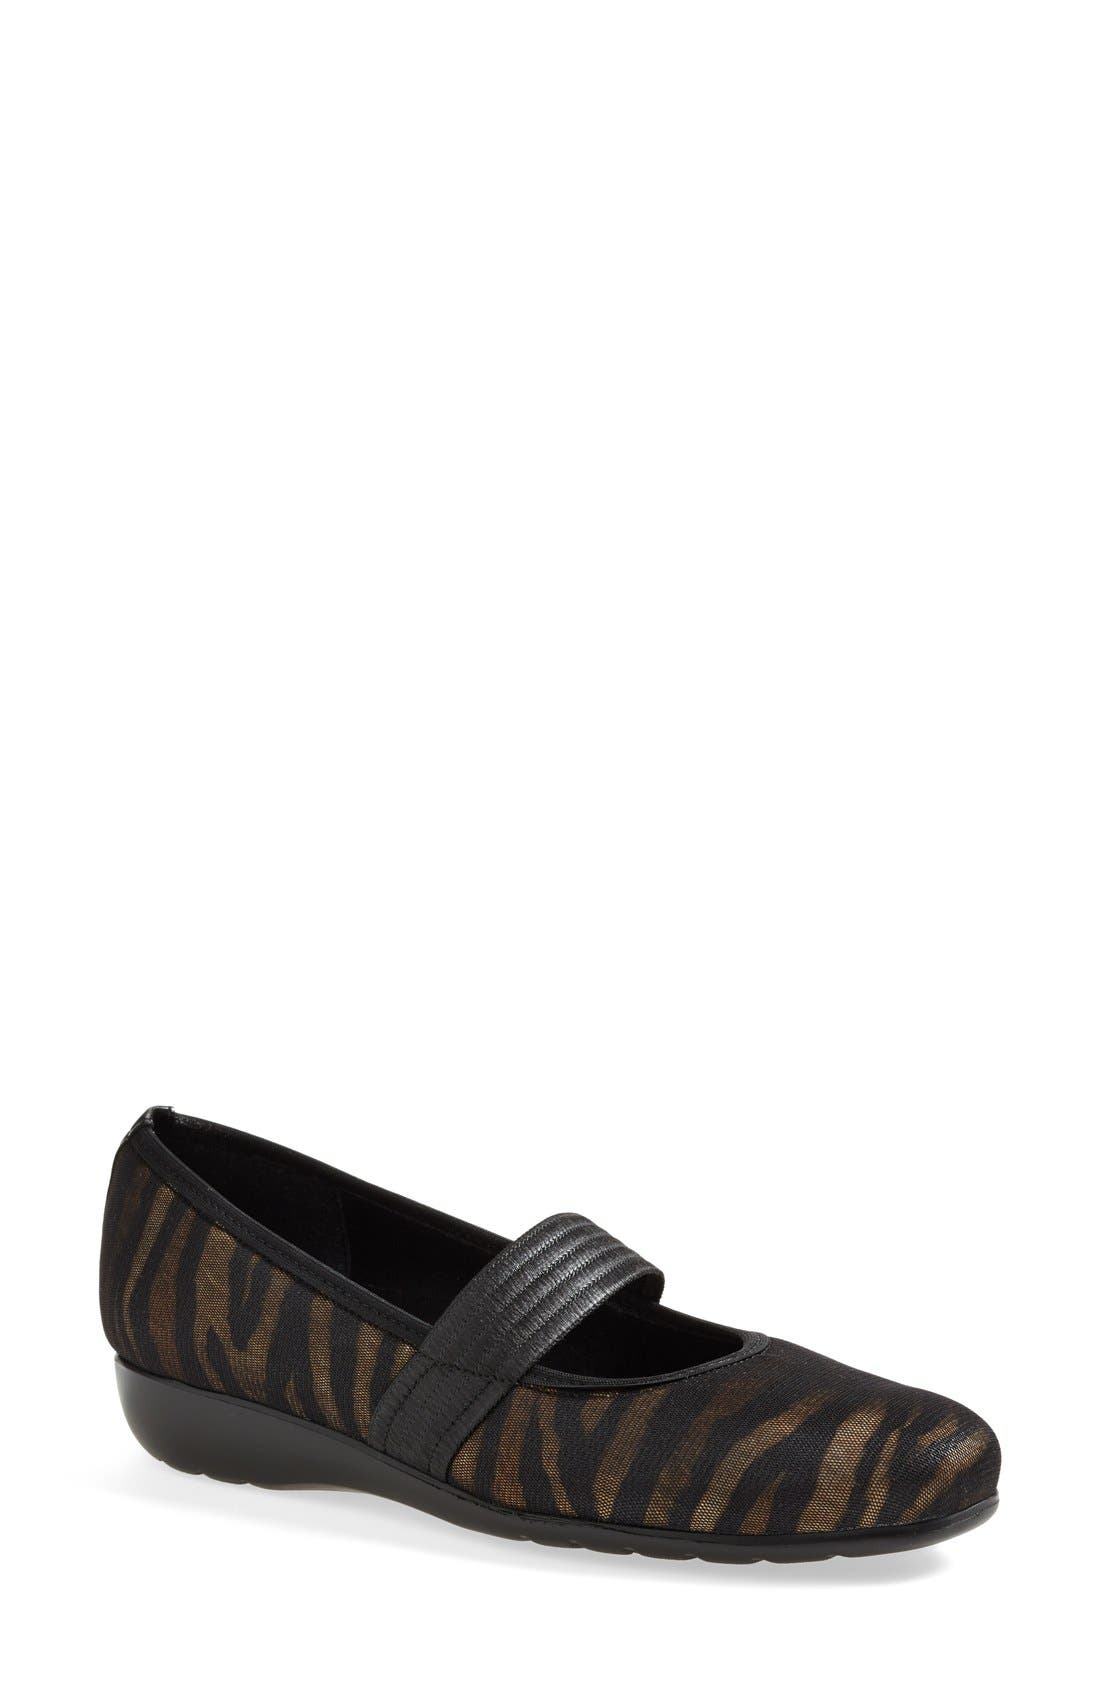 Alternate Image 1 Selected - Munro 'Fran' Zebra Stripe Flat (Women)